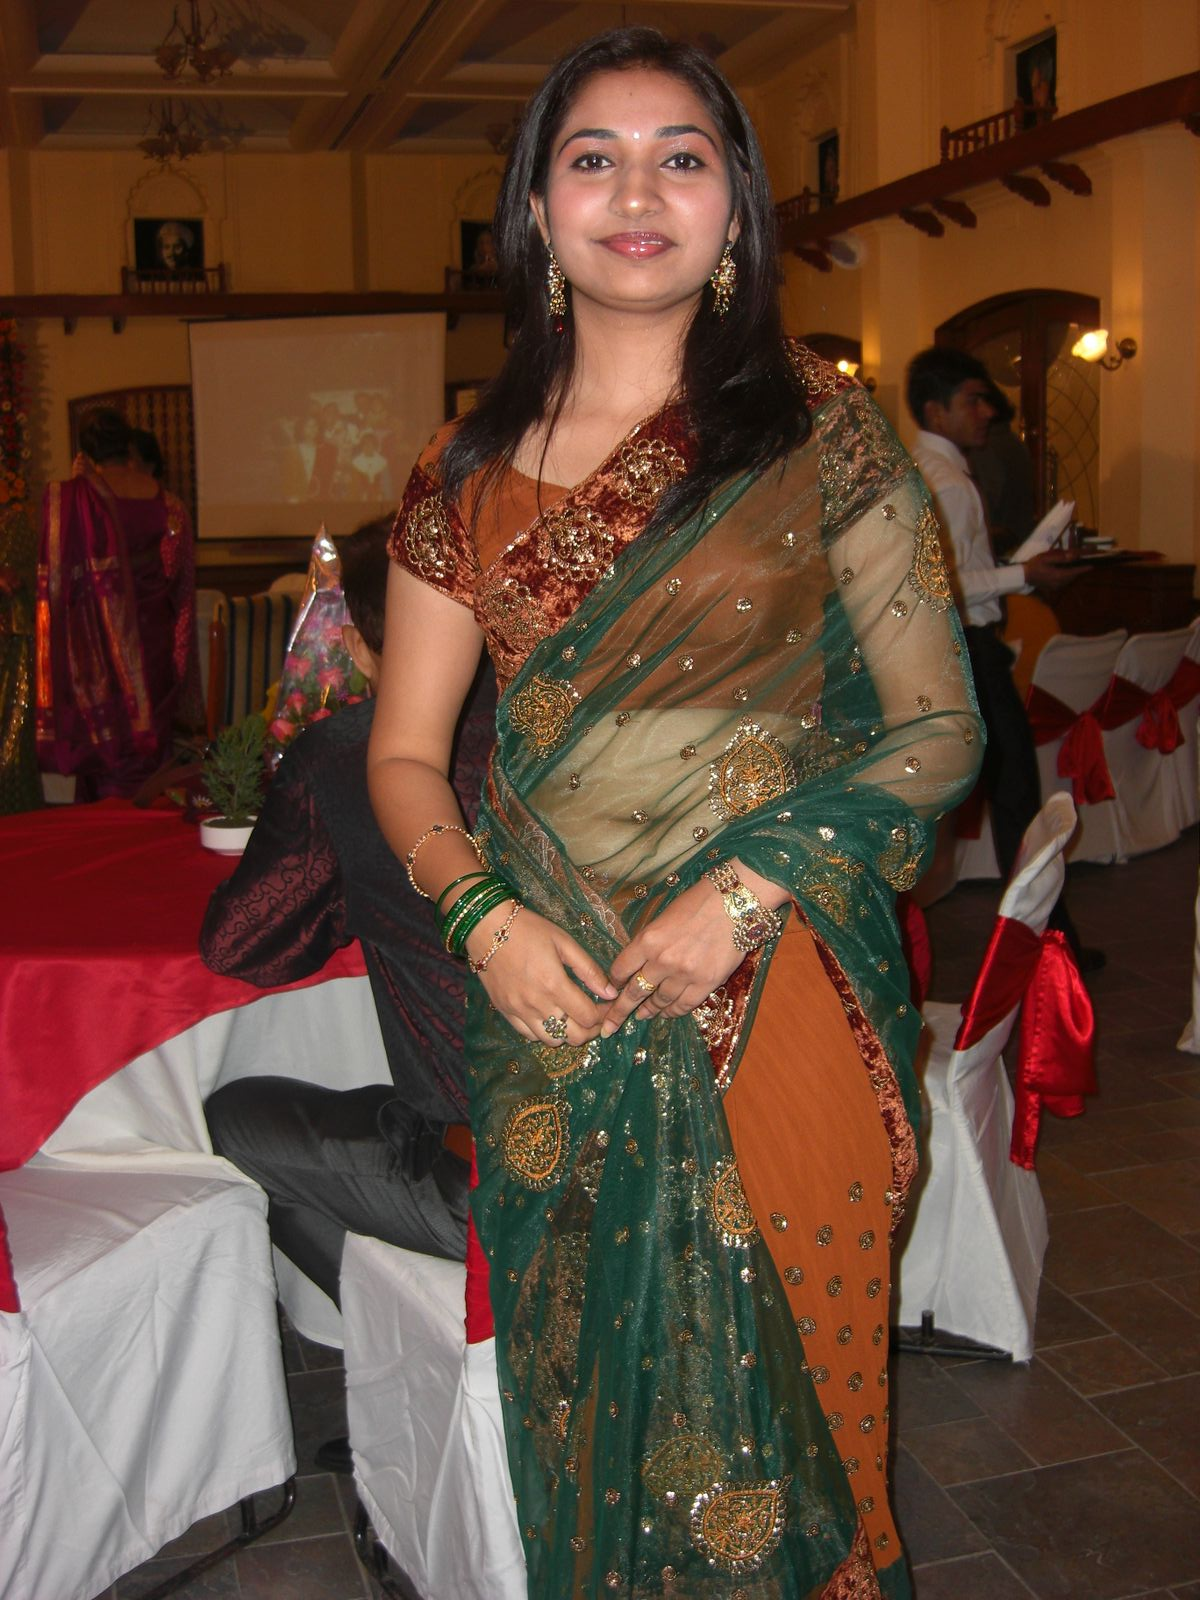 Homely Aunties Hot Photos - Hd Latest Tamil Actress -8017